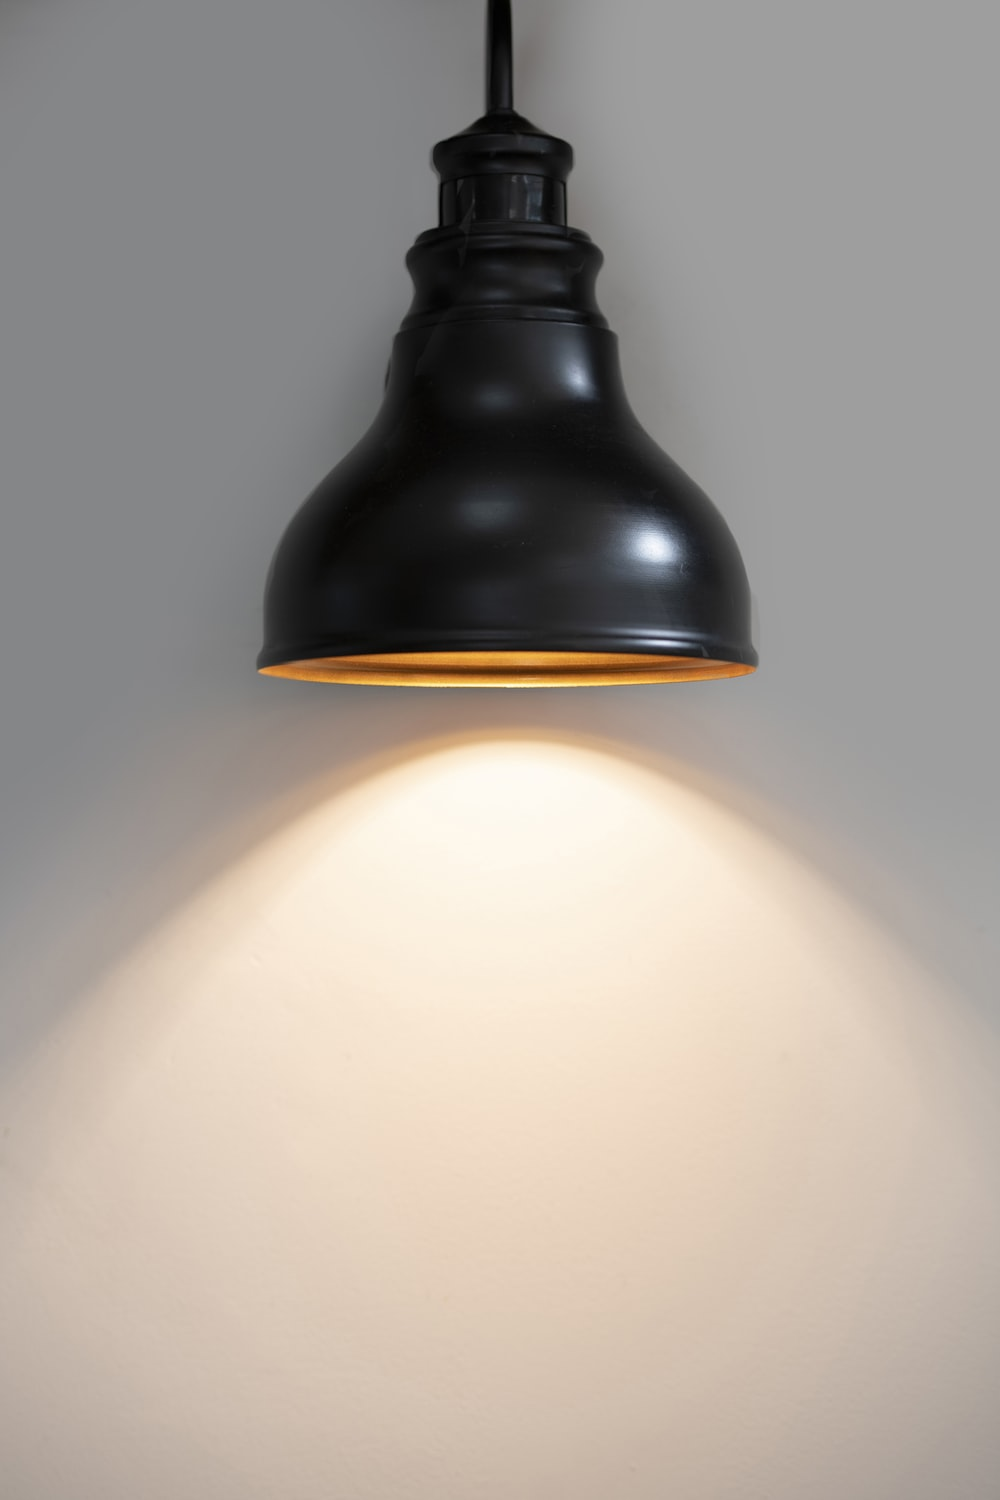 black pendant lamp turned on